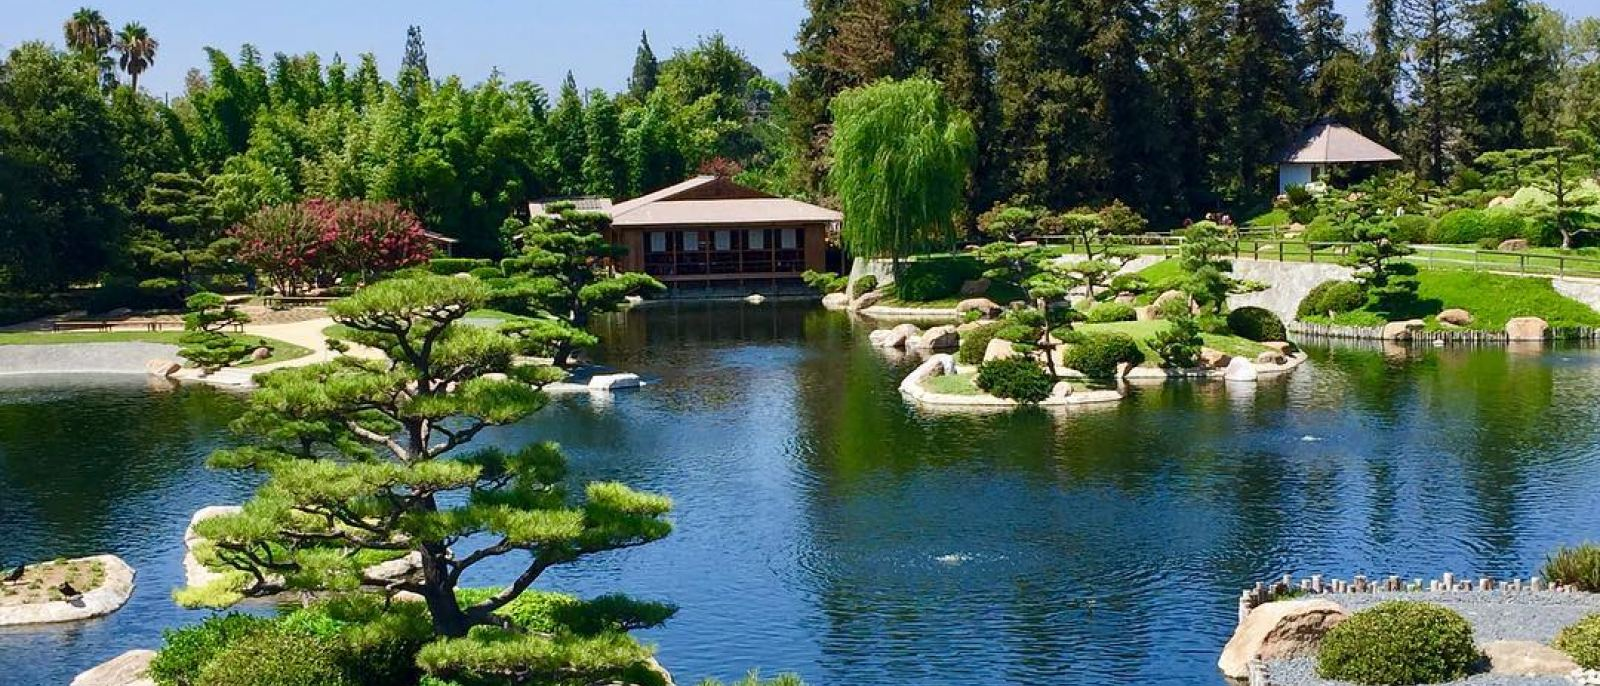 5 La Hidden Gardens You Need To Find Now Discover Los Angeles